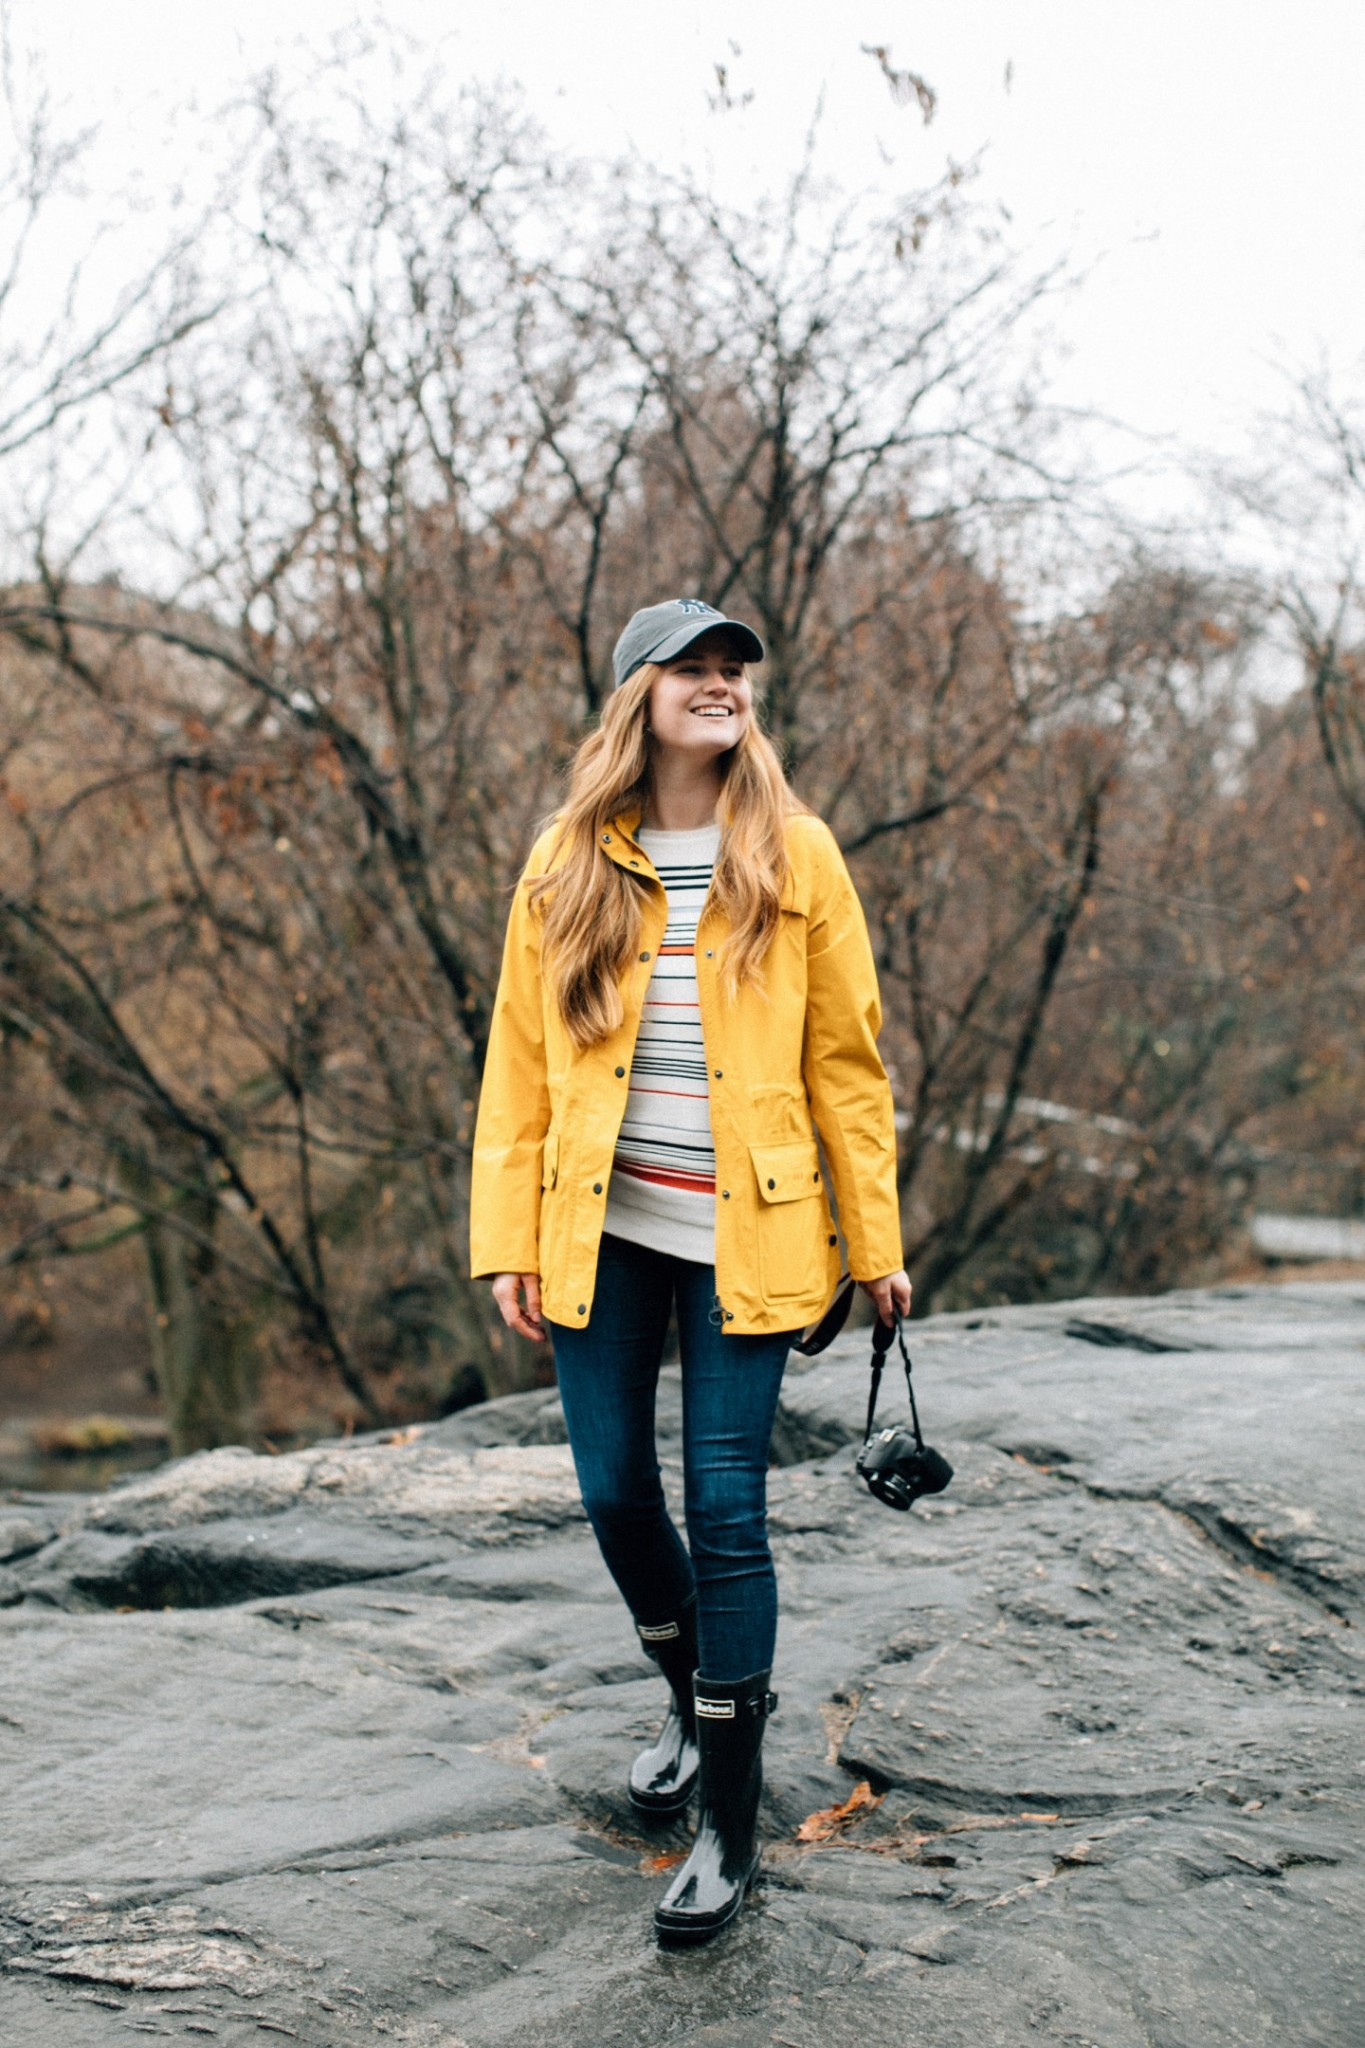 Lifestyle blogger Mollie Moore shares the new Weather Comfort Collection from Barbour | The new Barbour Weather Comfort Collection featured by top London fashion blog, Mollie Moore: the Barometer Jacket